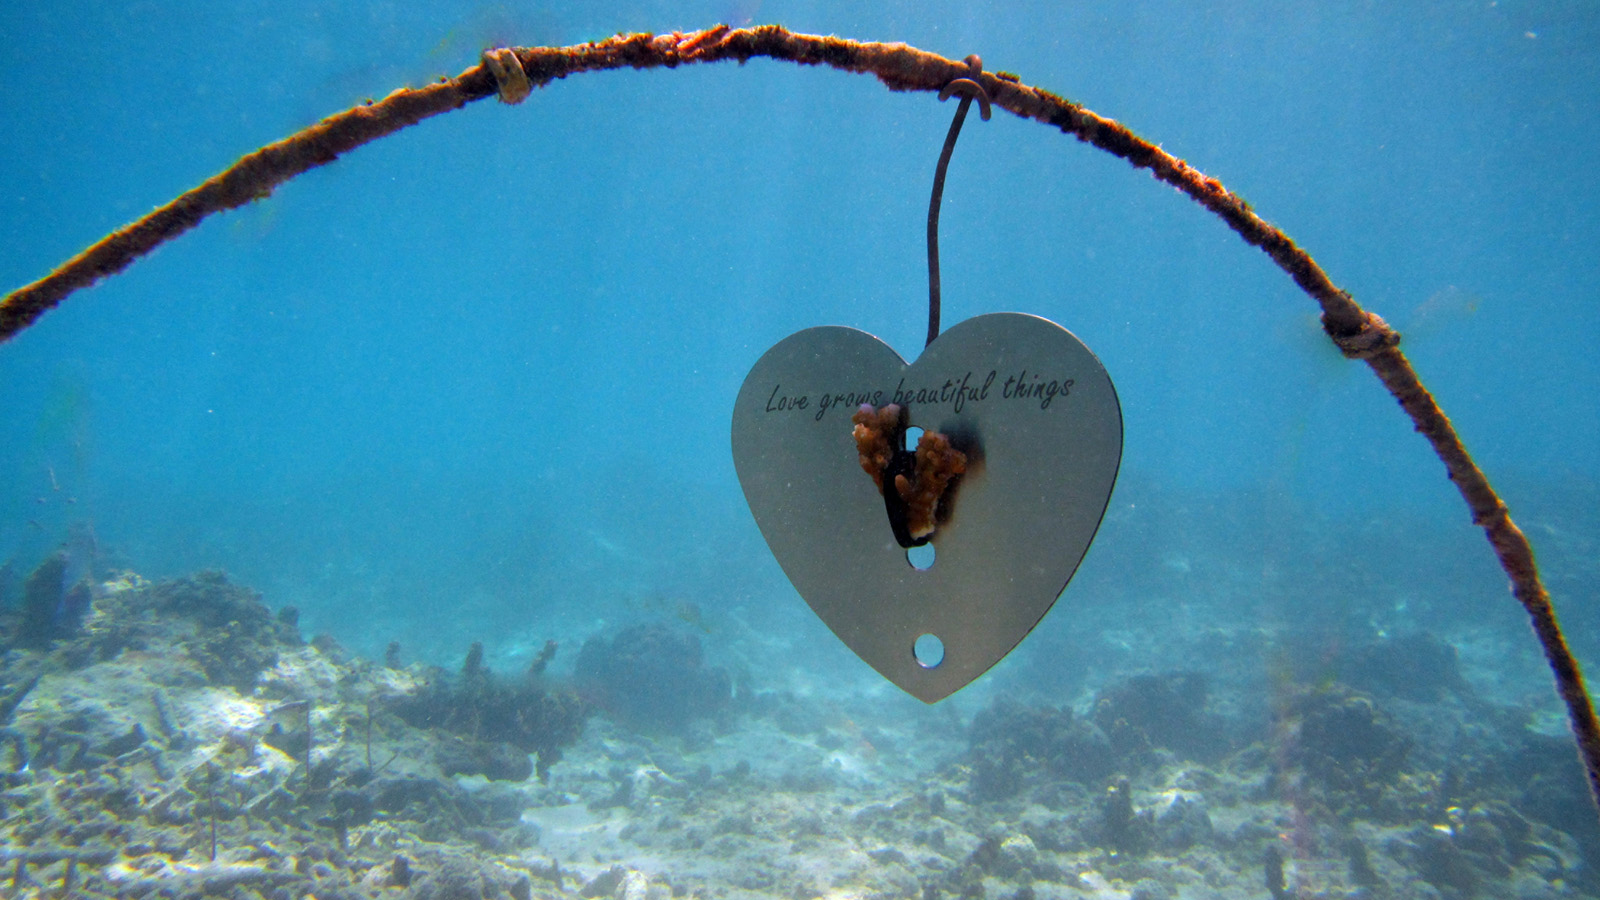 12 reasons to visit seychelles at least once - world class diving